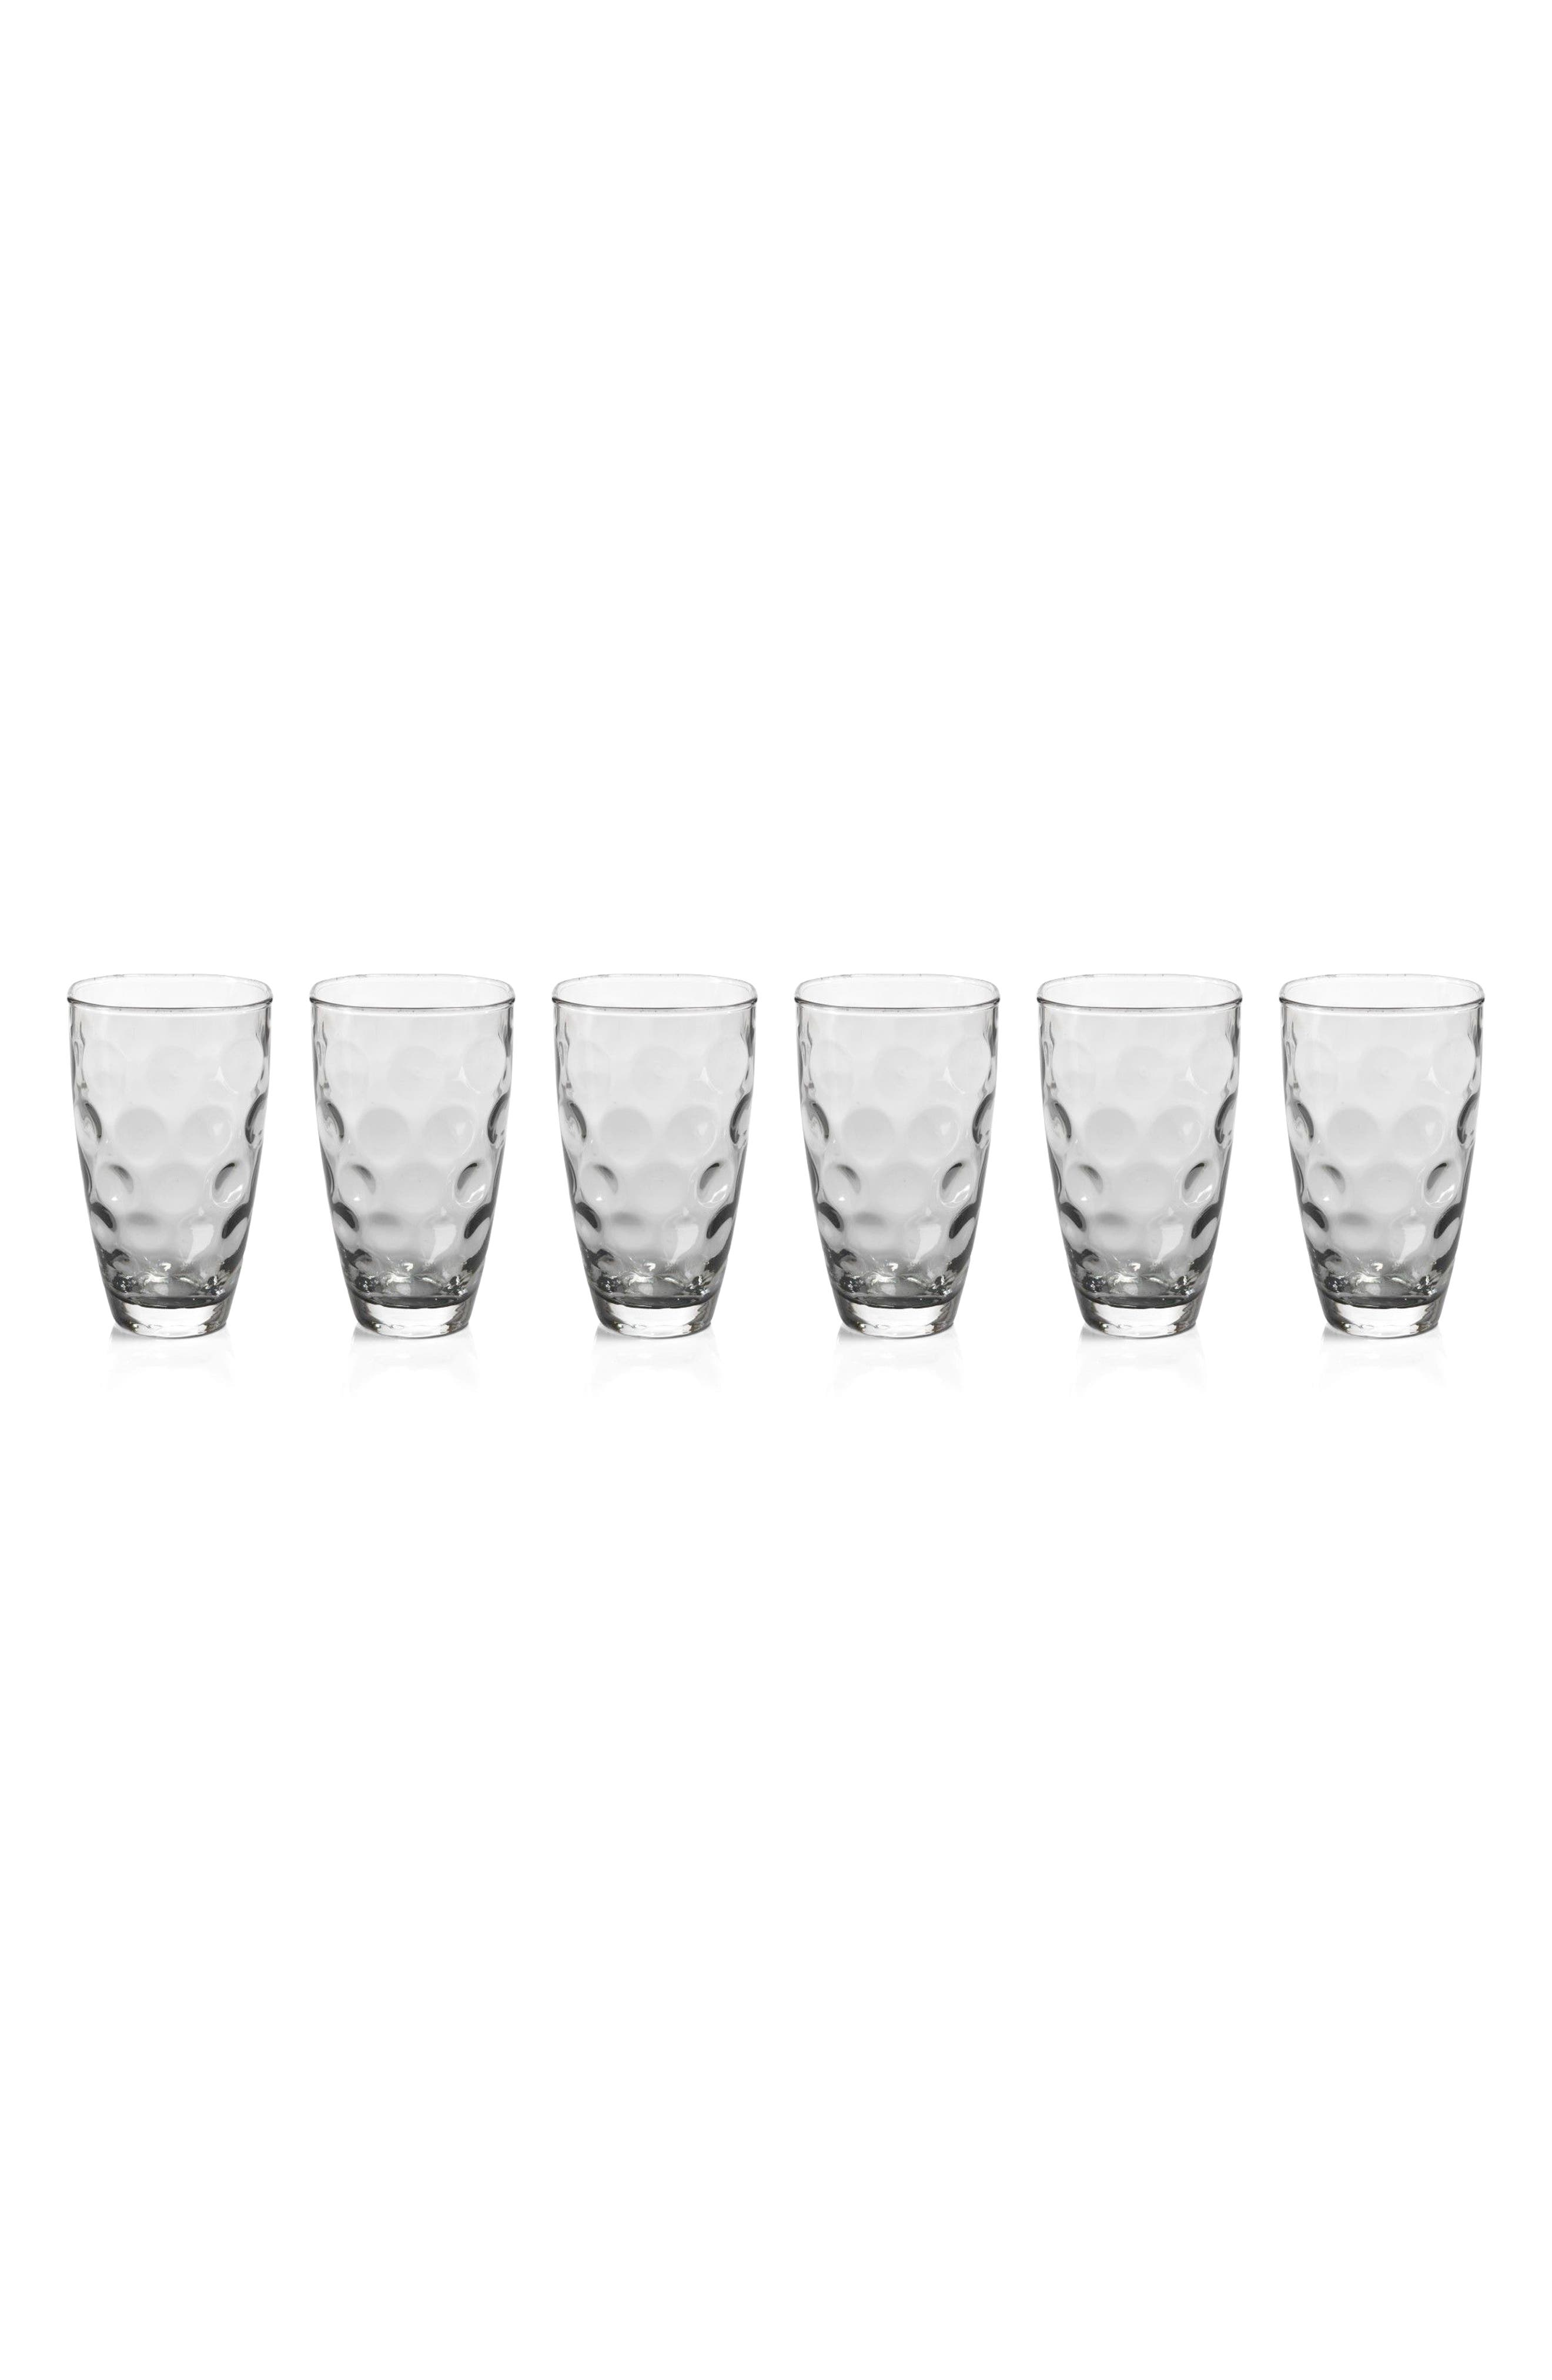 Main Image - Zodax Dimpled Set of 6 Highball Glasses